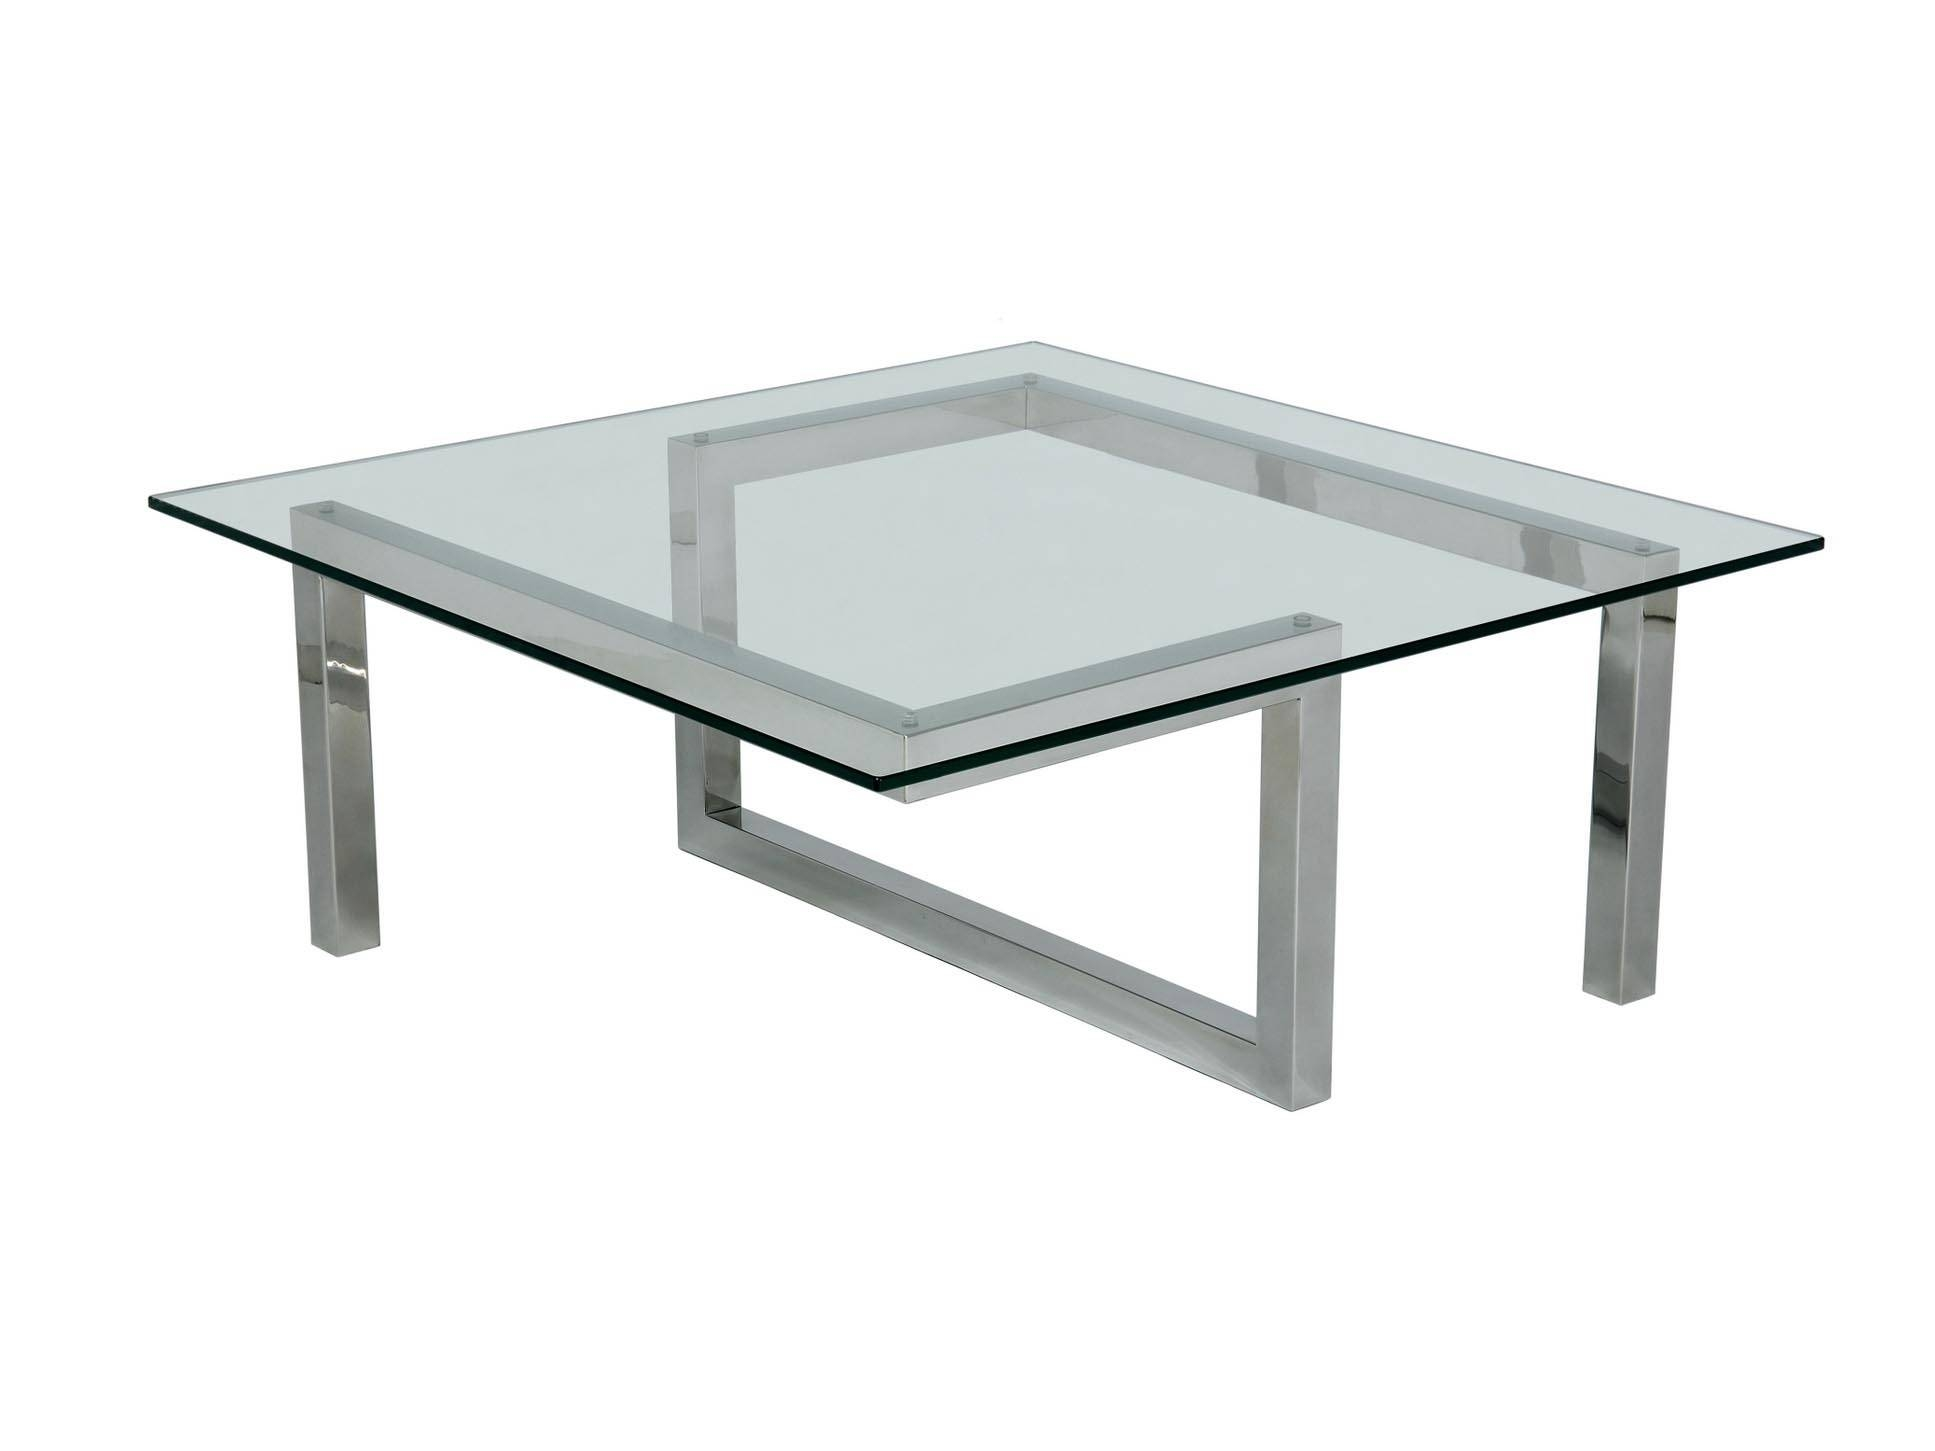 Modern Glass Coffee Table Square Shape Living Room Furniture Ideas For Square Shaped Coffee Tables (View 18 of 30)